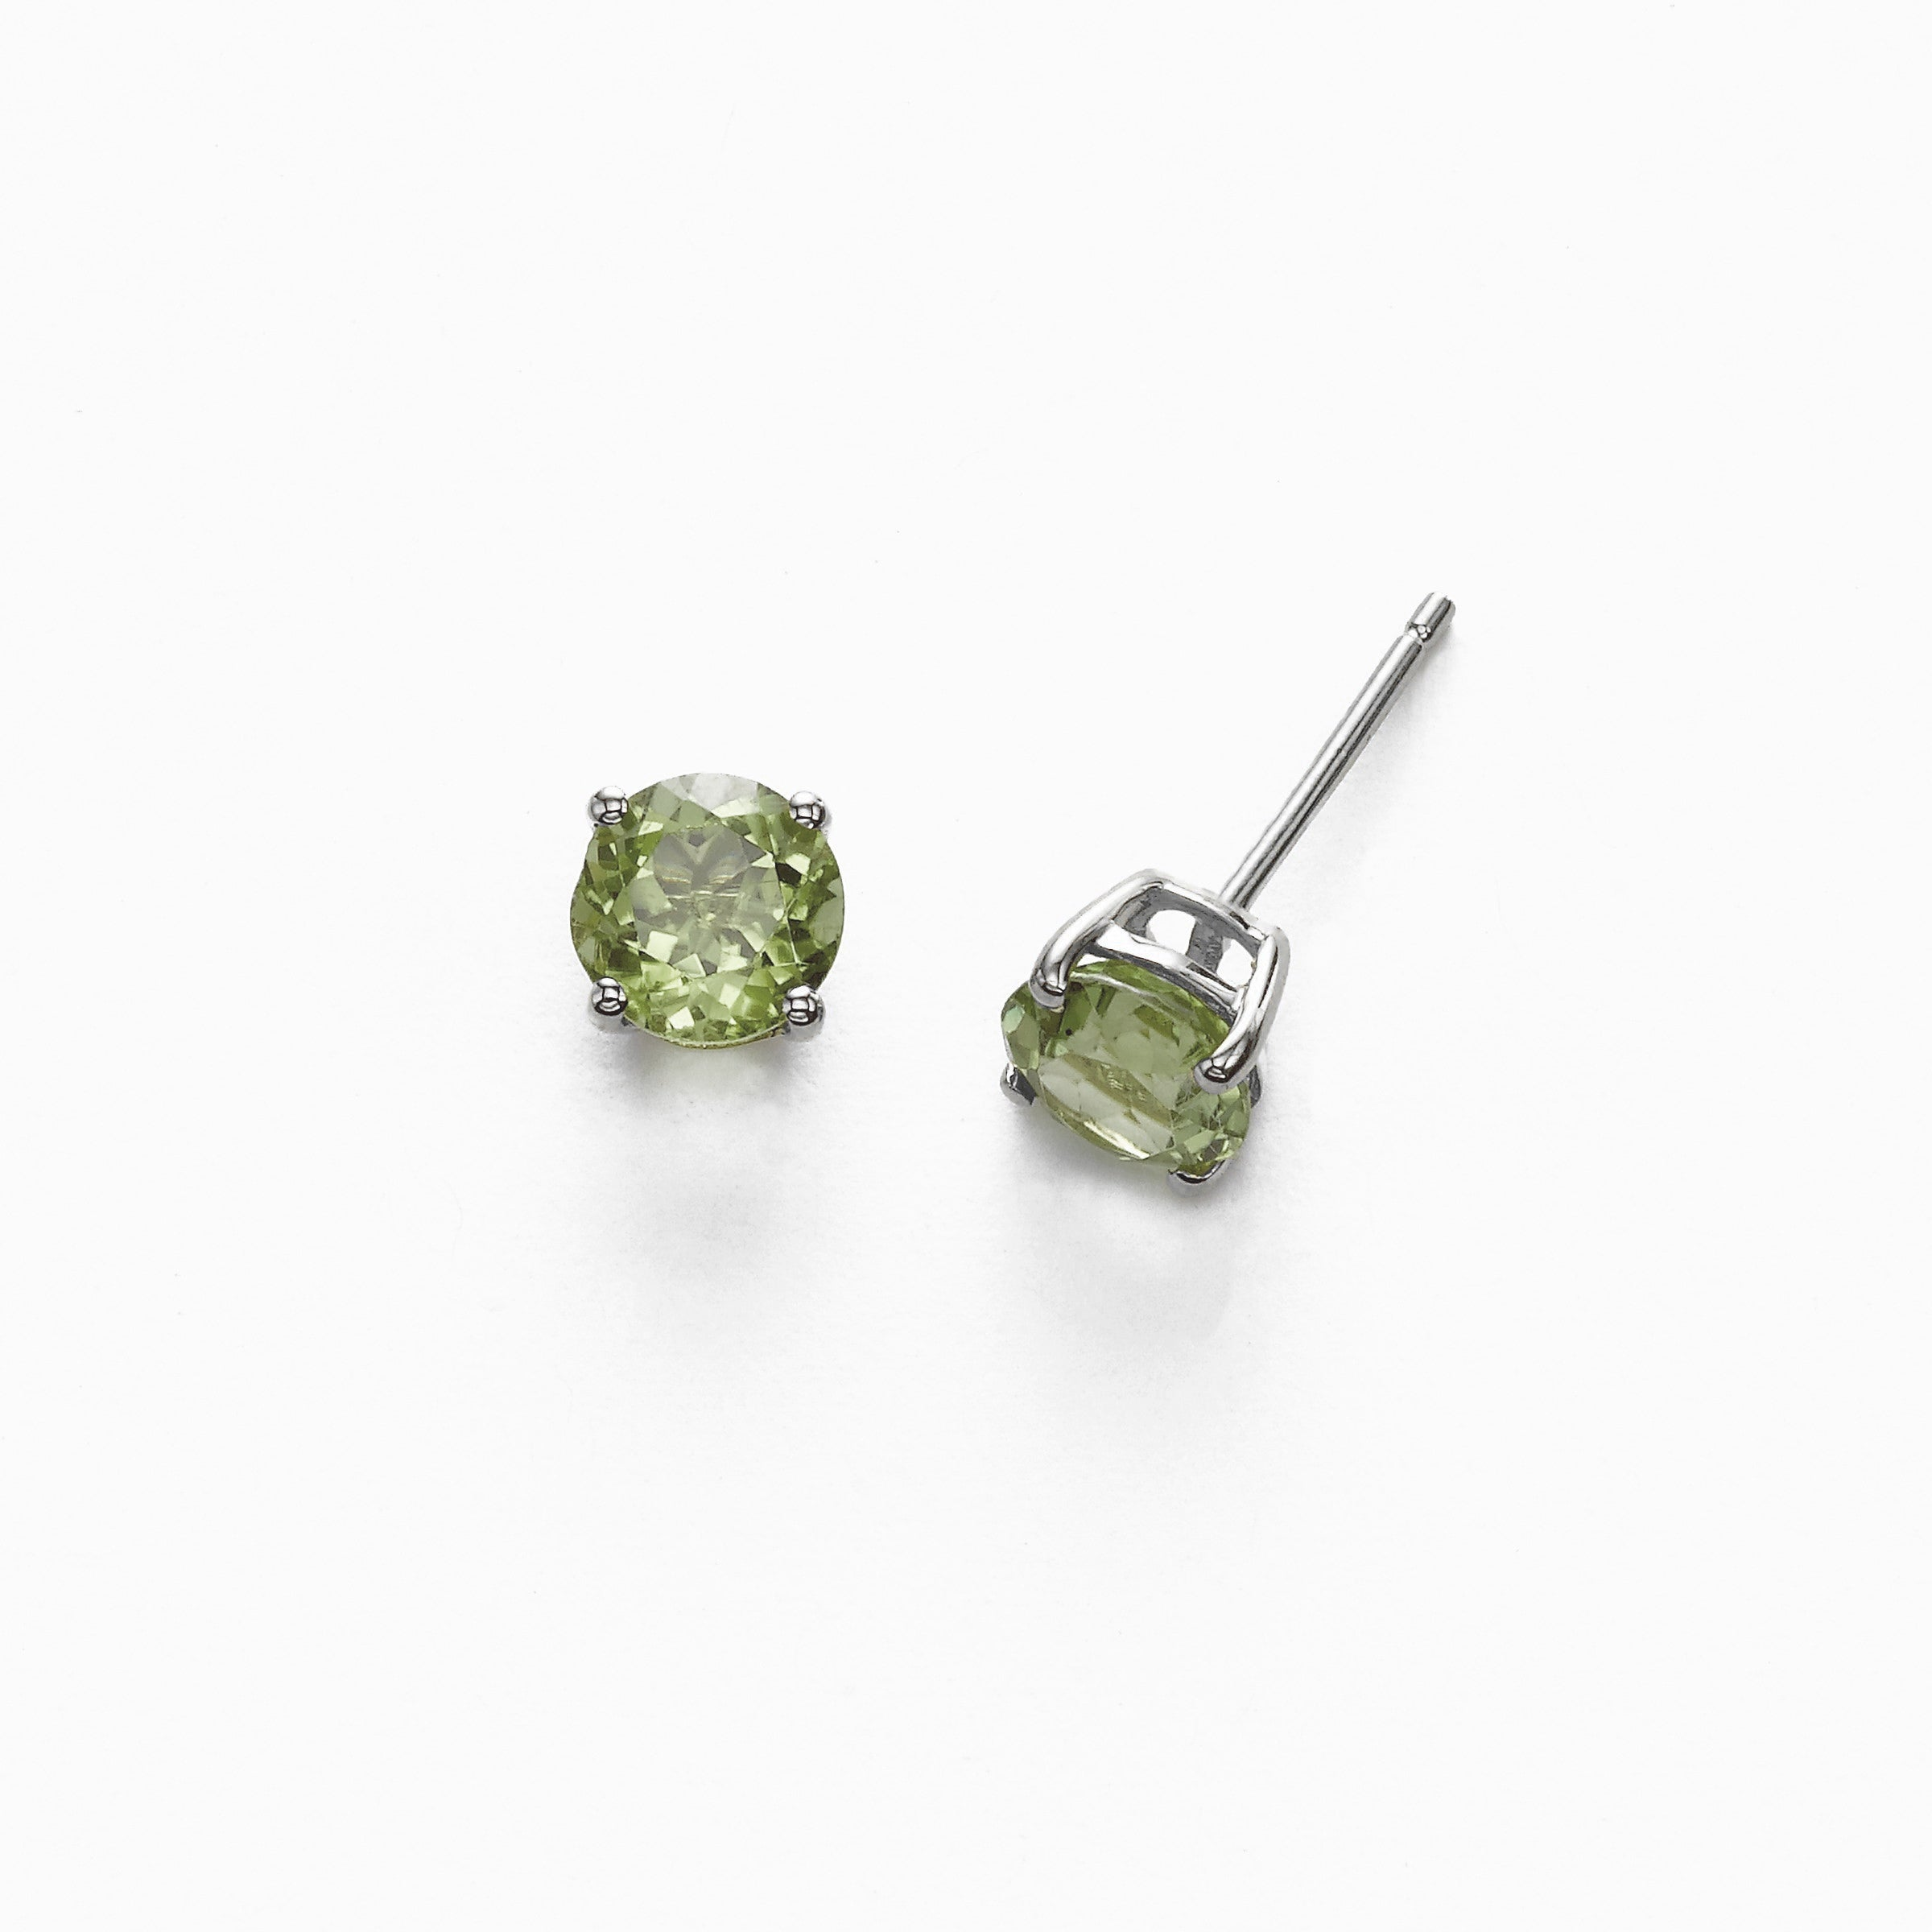 Round Prasiolite 6MM Stud Earrings, 14K White Gold